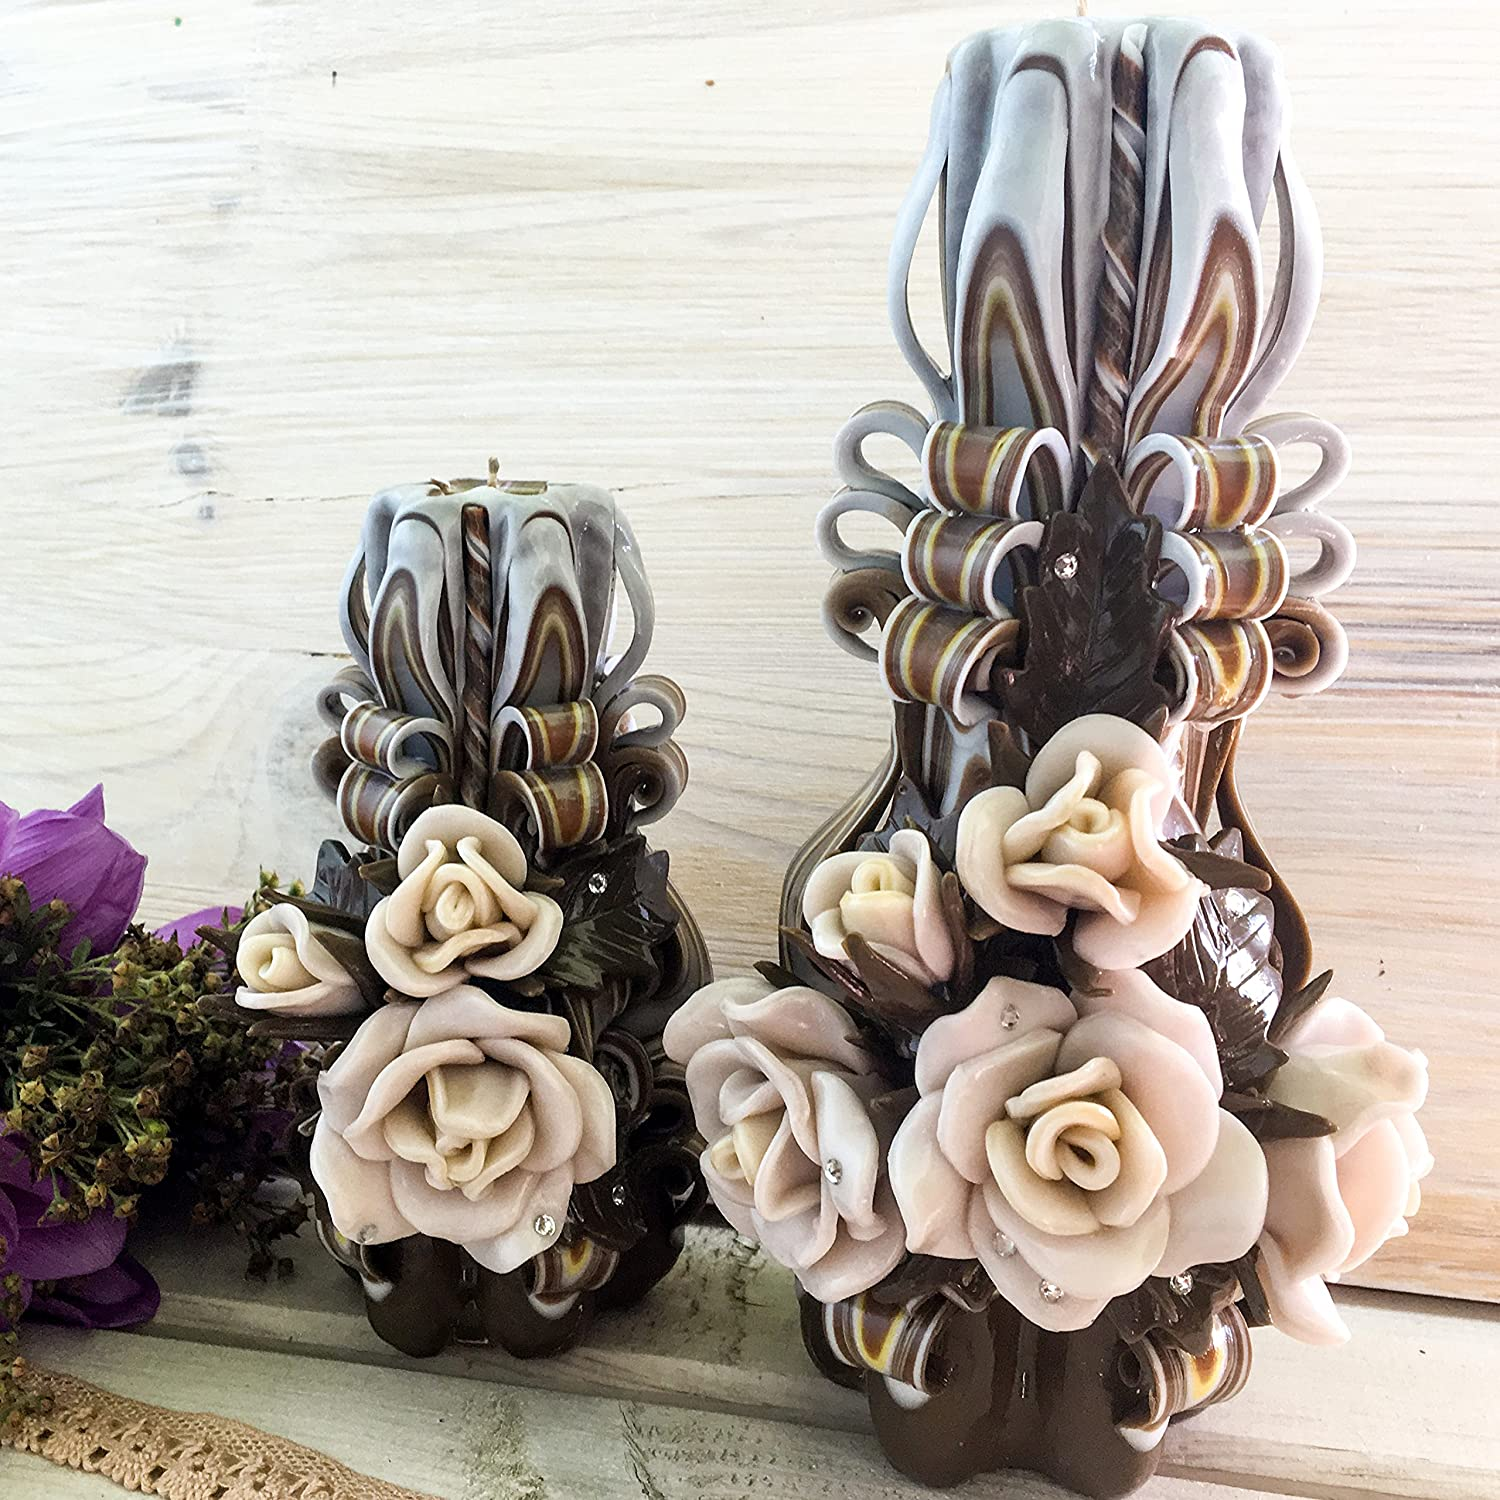 Carved candles Chocolate - gift for her - gift for mom - candle brown - decoration andles for interior - beige candles - white brown candles - Christmas gift